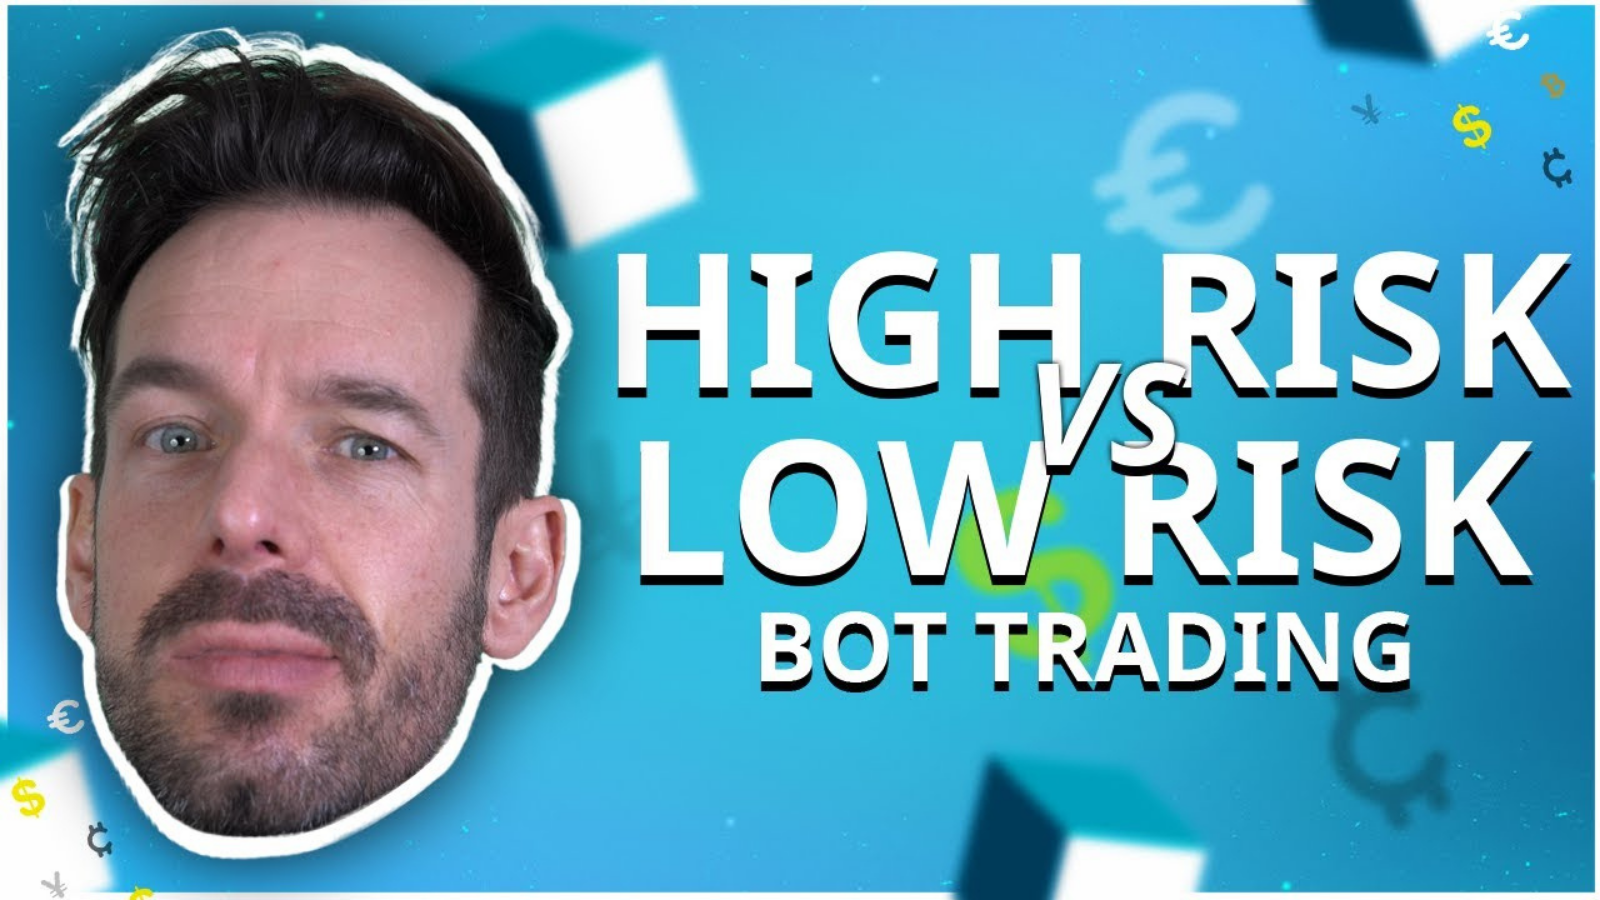 BOTS Blog: The difference between trading with a high-risk bot and a low-risk bot